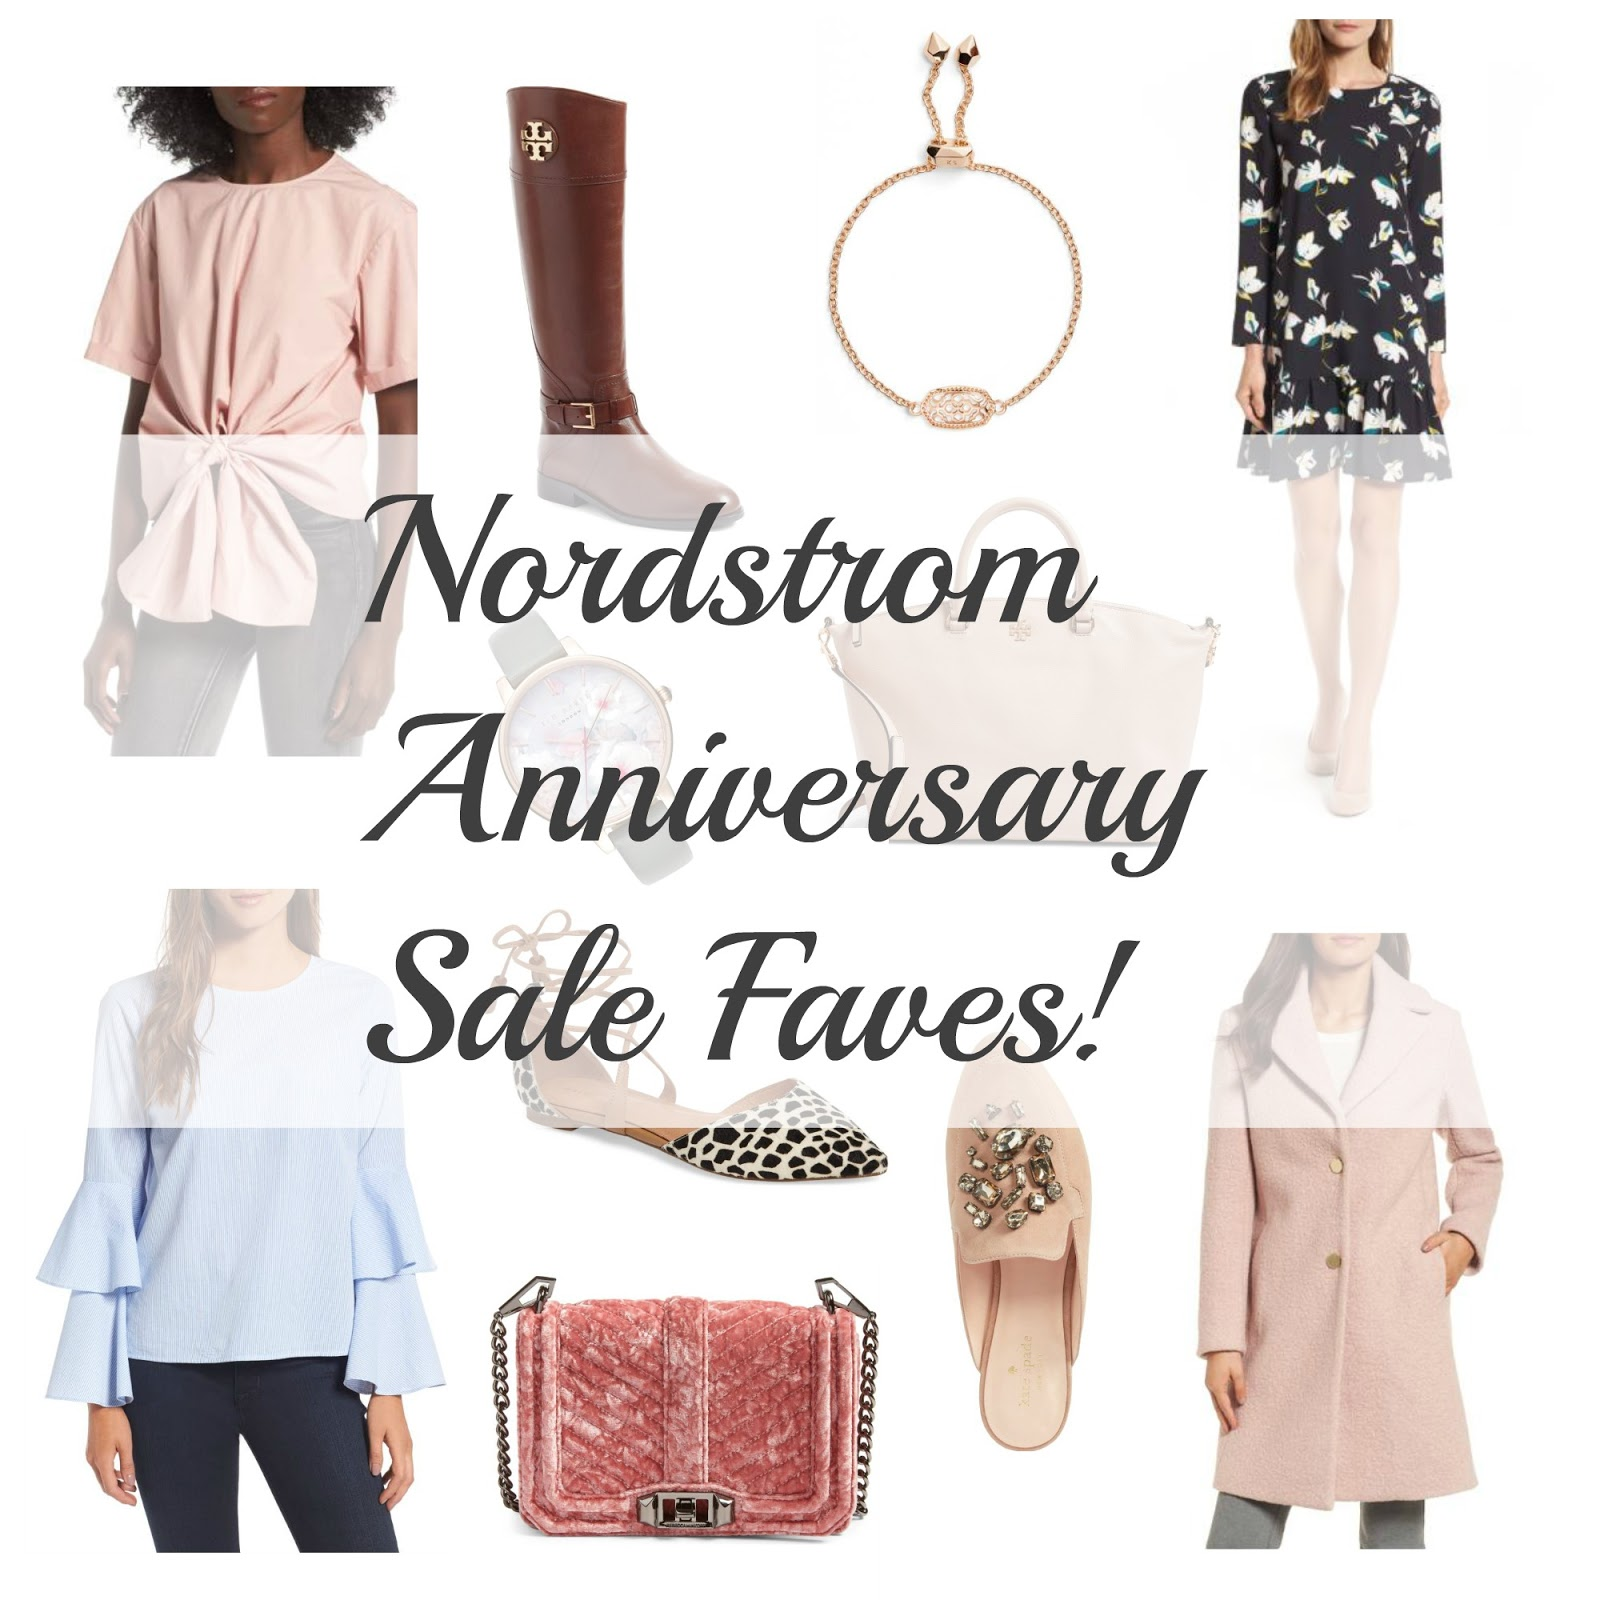 Nordstrom Anniversary Sale Faves! & Link Up